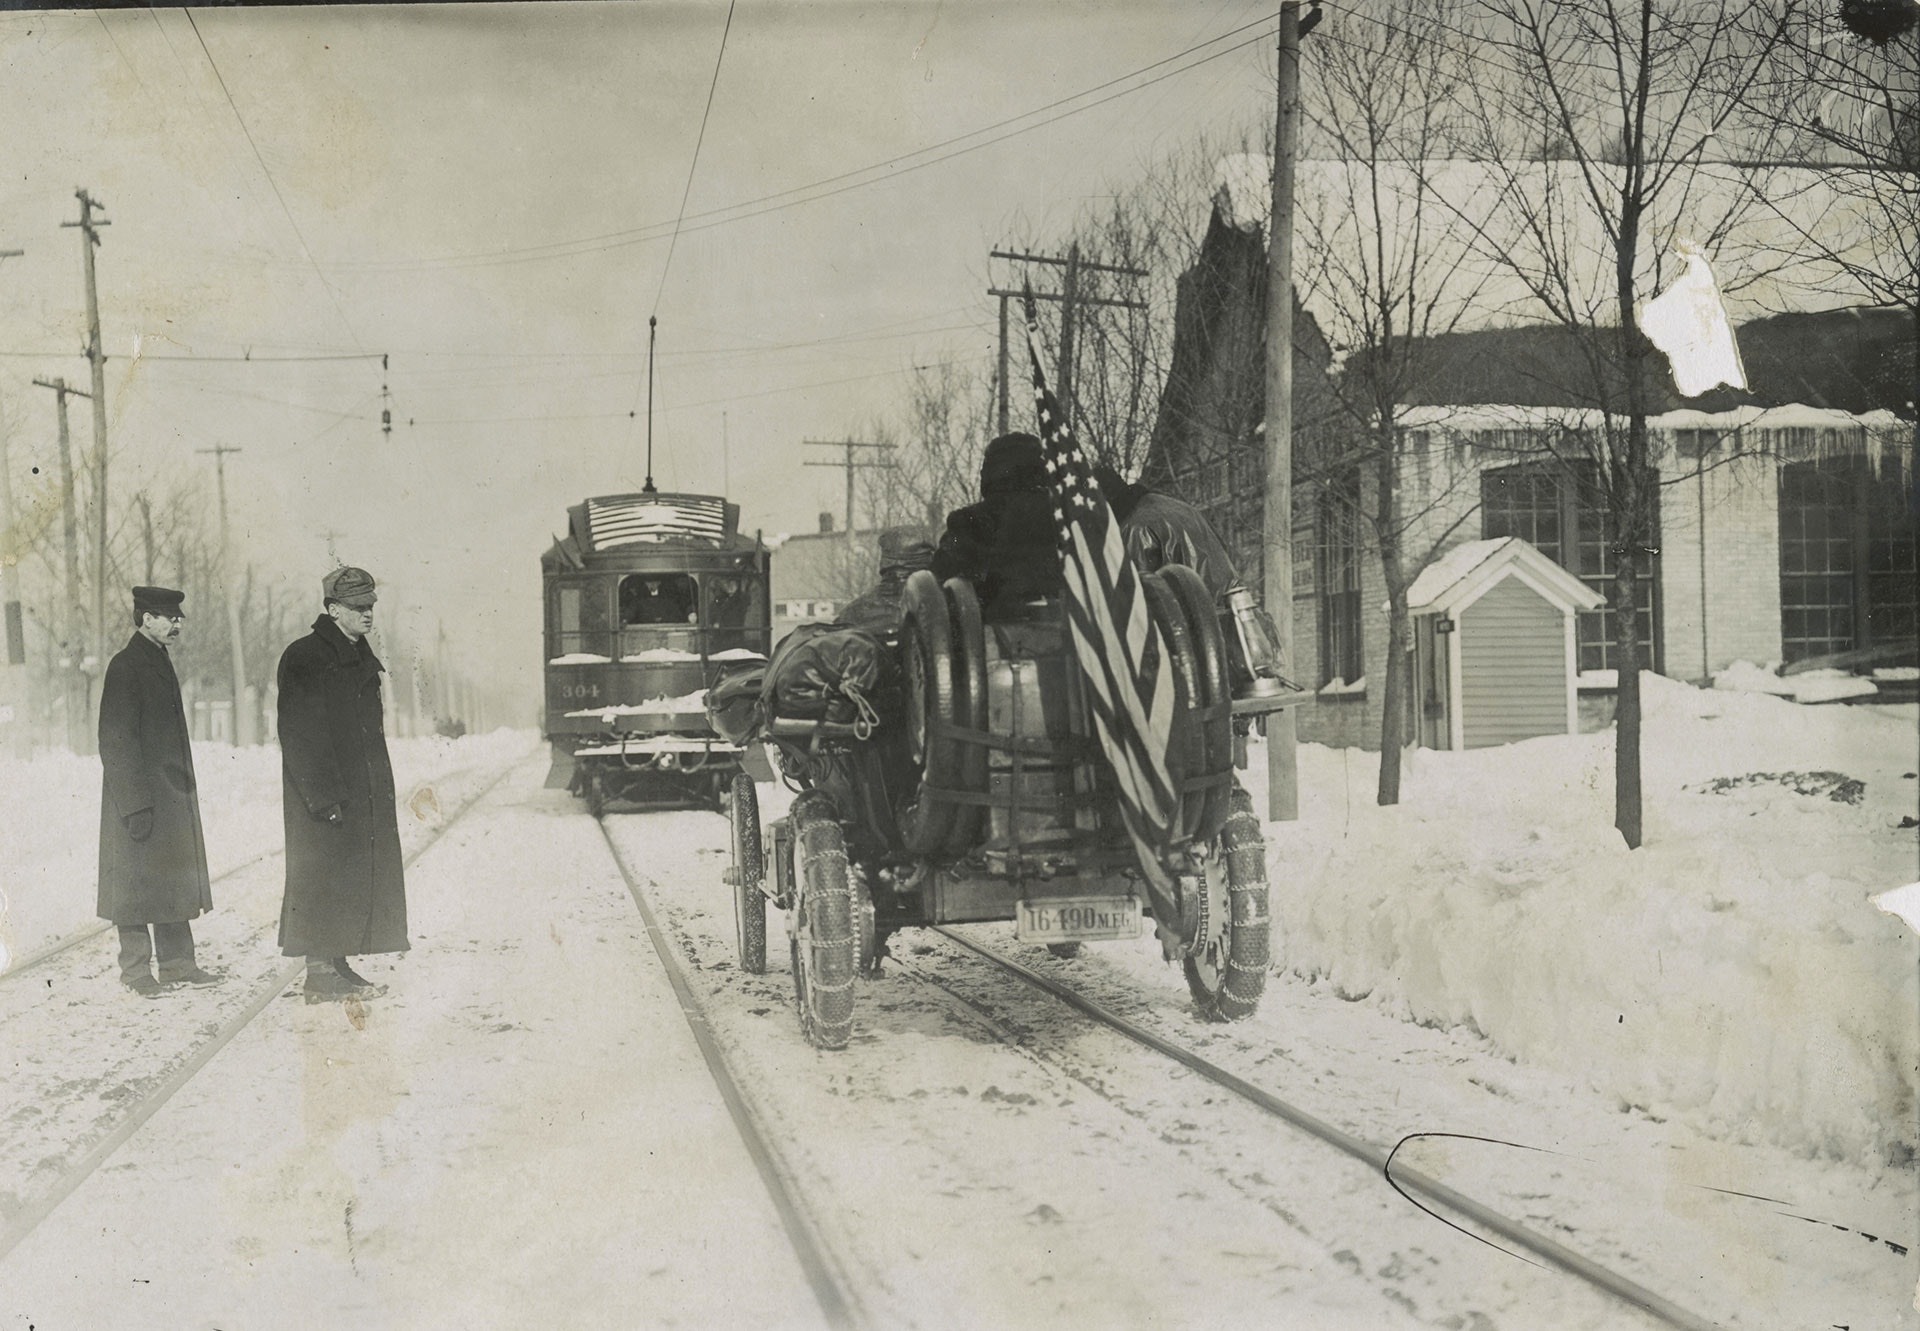 Thomas Flyer participating in New York-to-Paris automobile race driving behind a streetcar during the winter